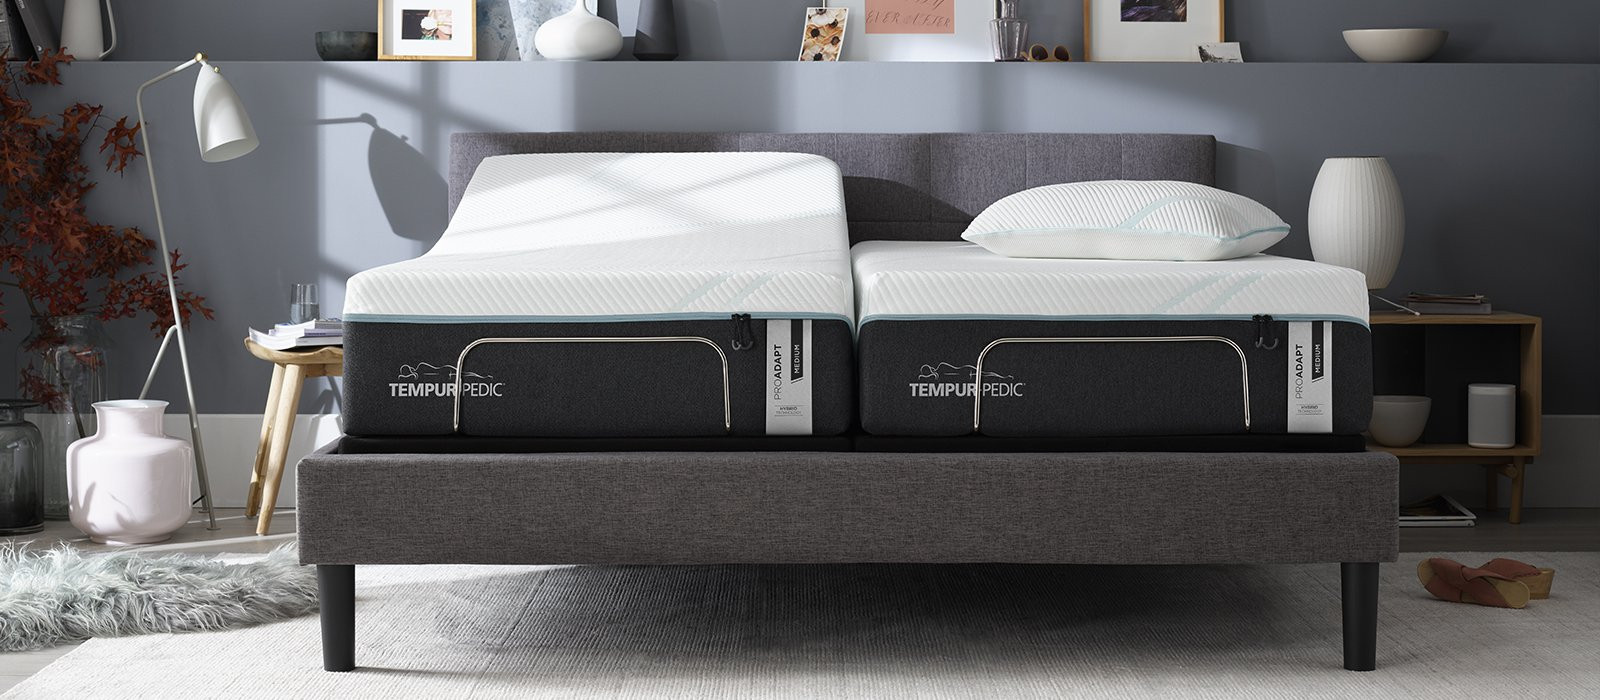 Pro-Adapt Medium Queen Mattress